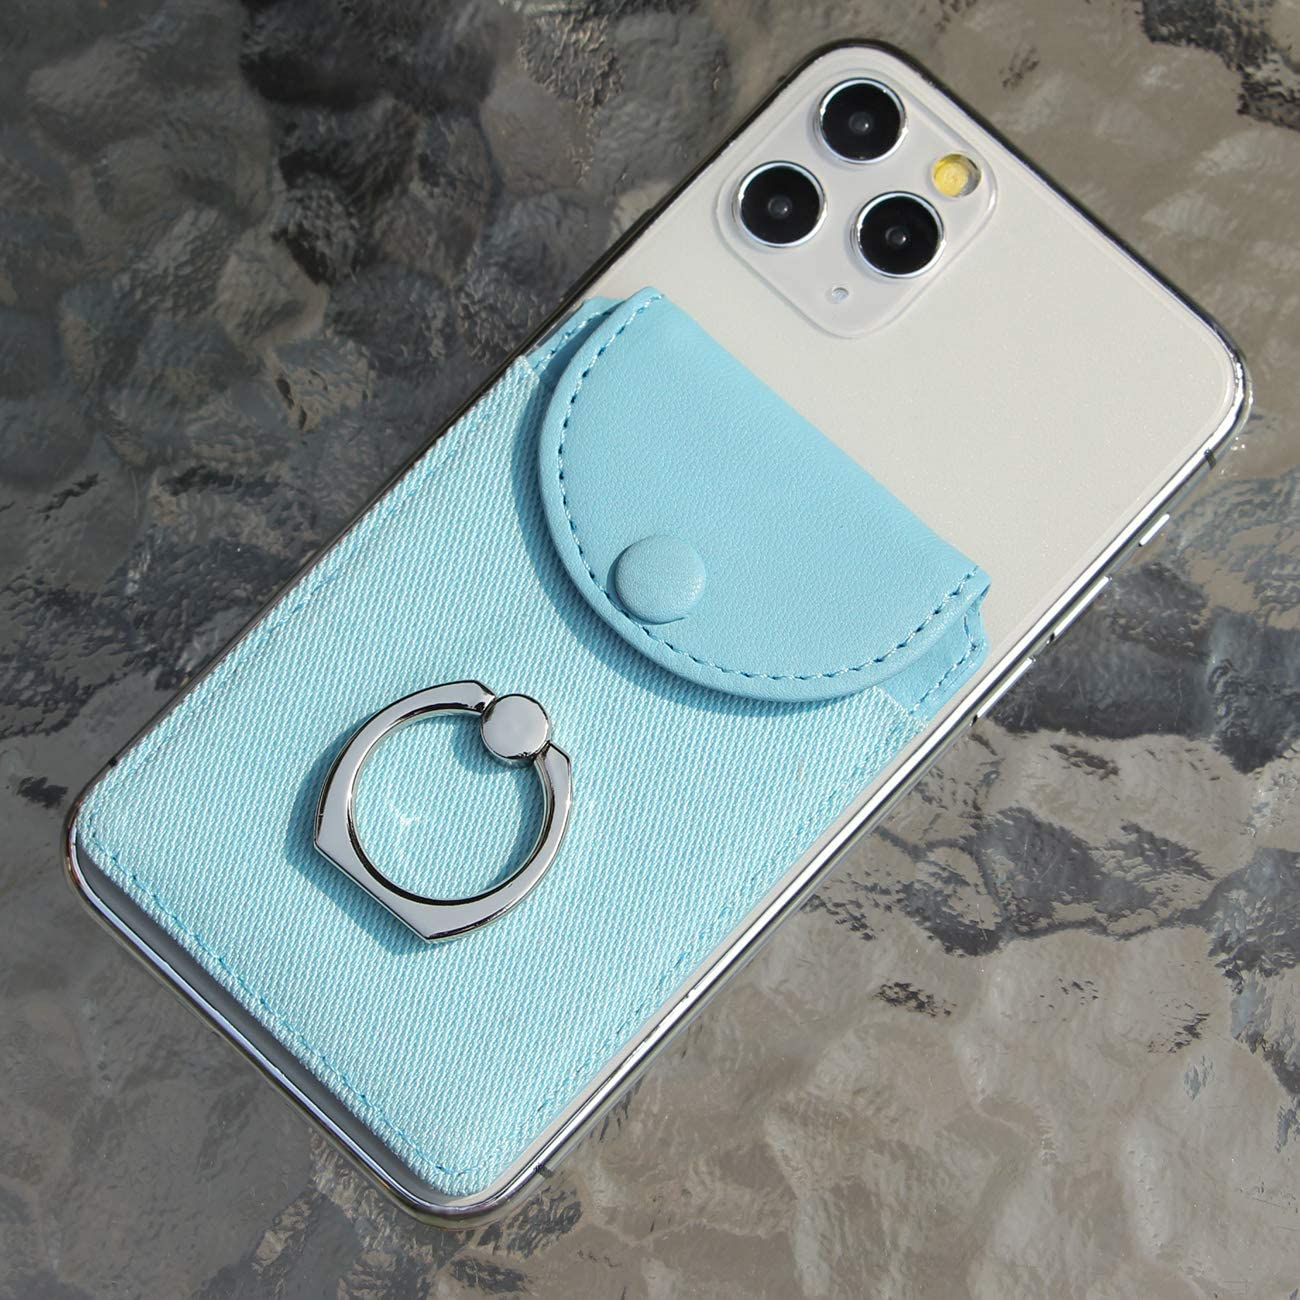 Finger Ring and Cell Phone Stick on Wallet Card Holder Phone Pocket for iPhone Finger Ring Ultra-Slim Self Adhesive Credit Card Holder Wallet Cell Phone Leather Wallet Grip Kickstand for Smartphone